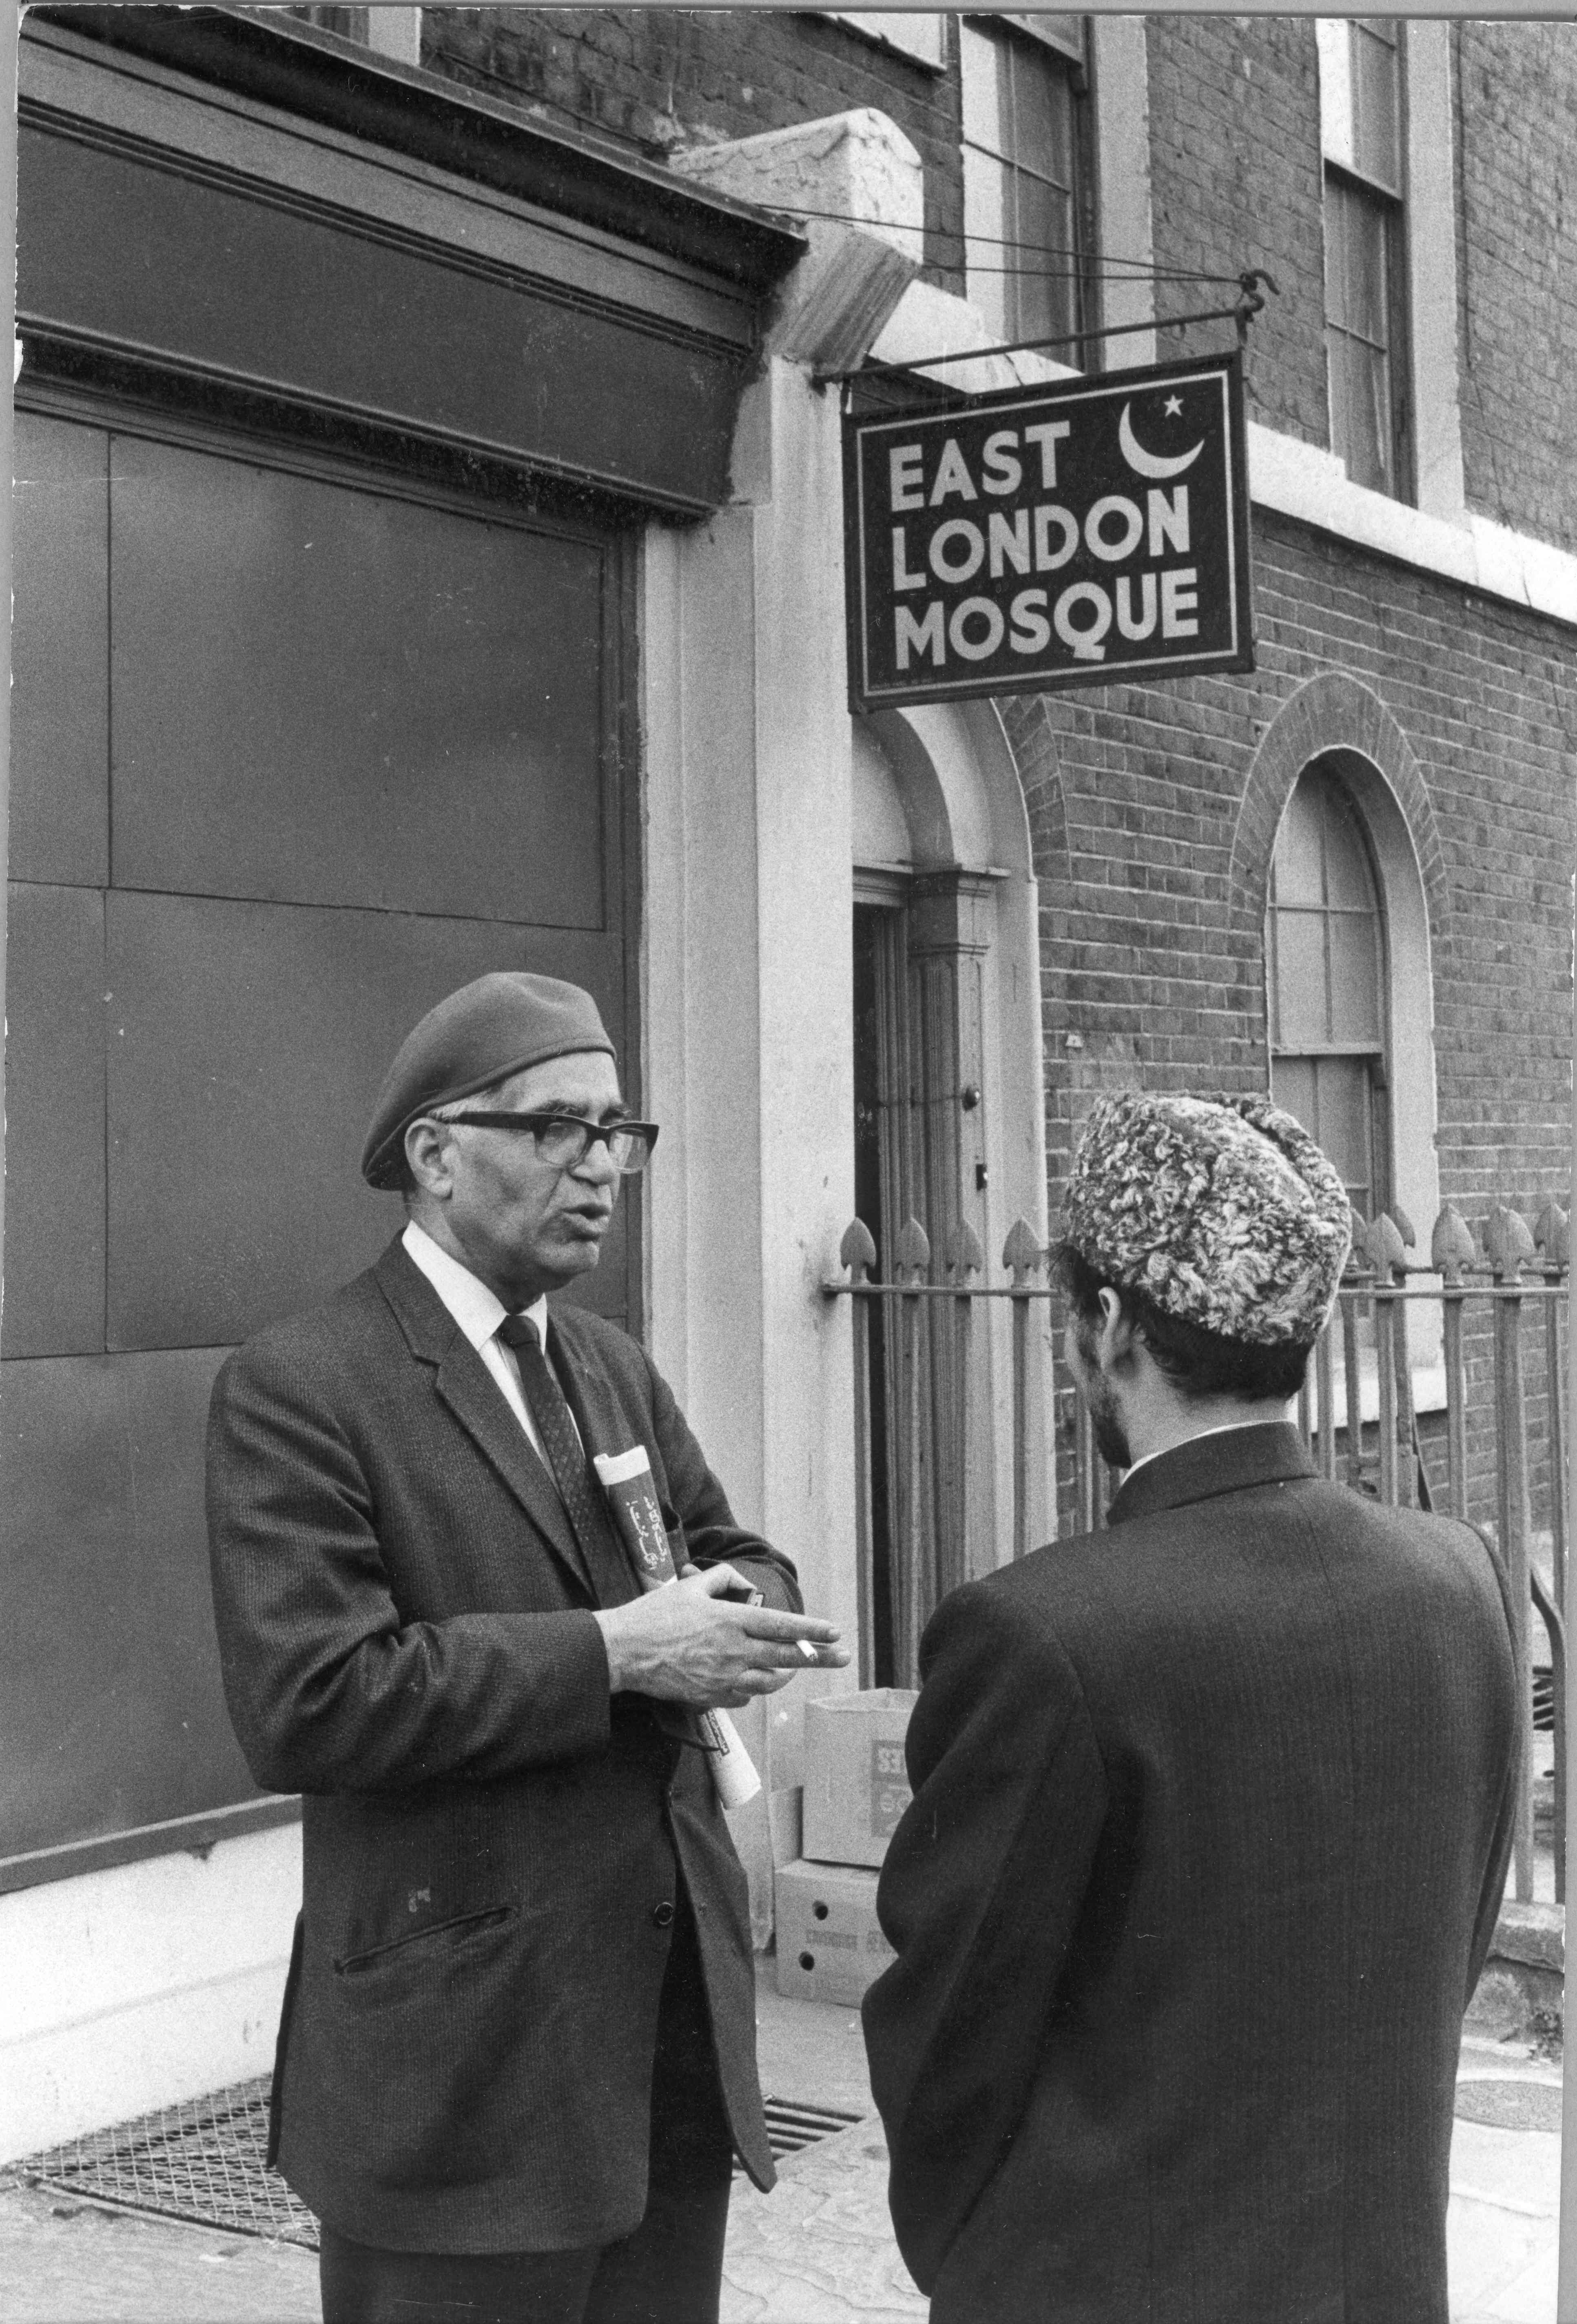 East London Mosque, Commercial Road, 1972